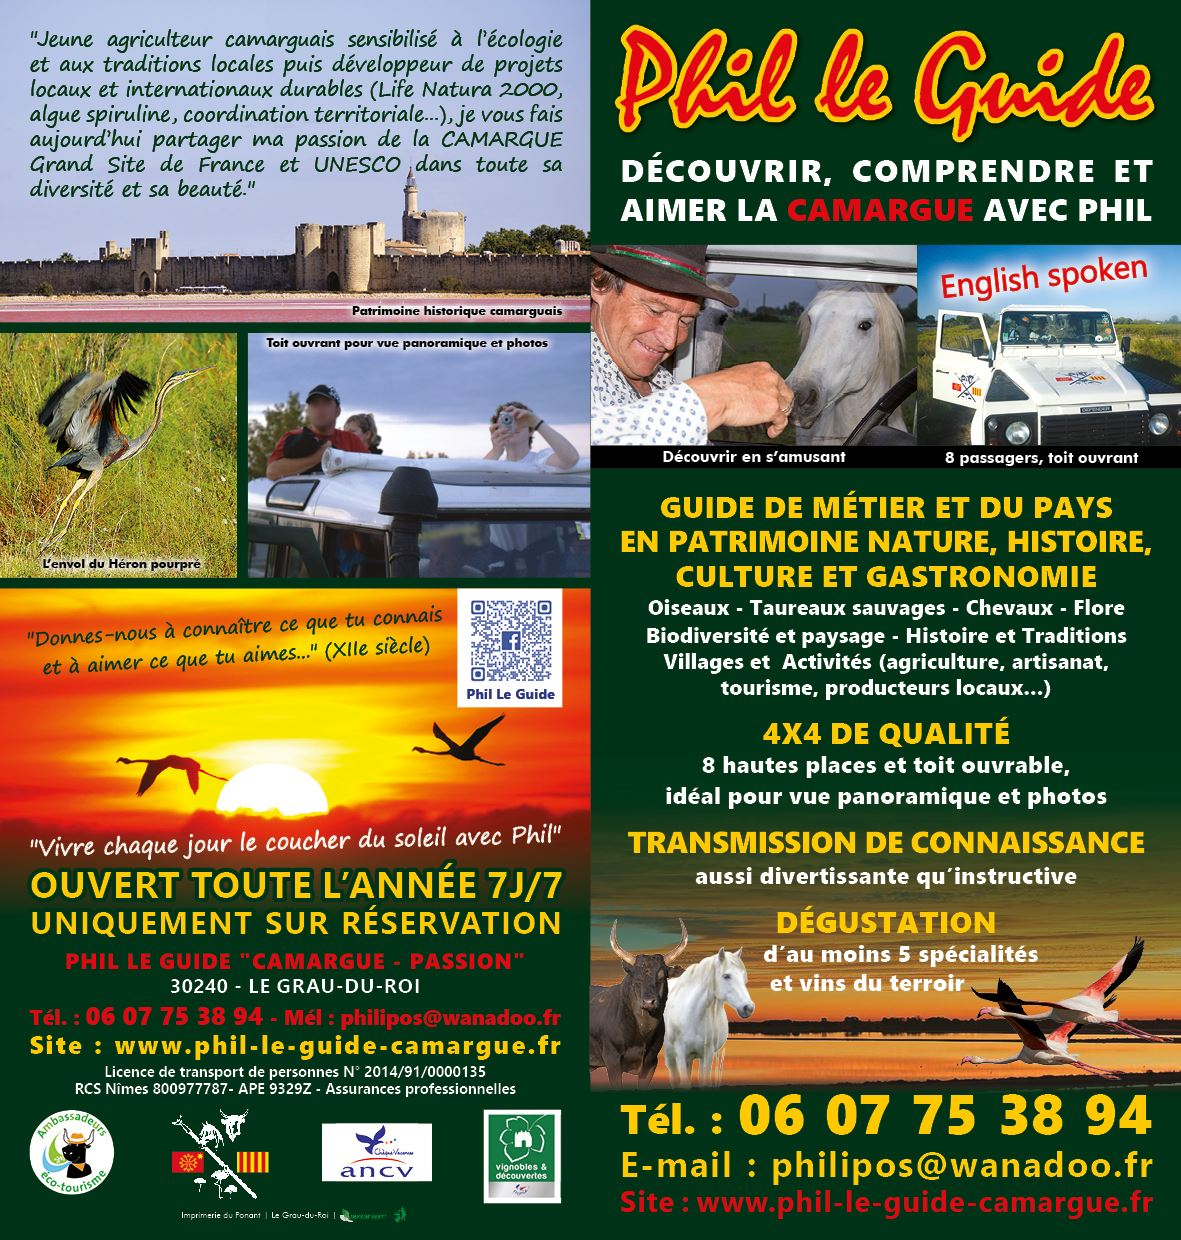 To discover, understand, enjoy the CAMARGUE with Phil ! (half-day)